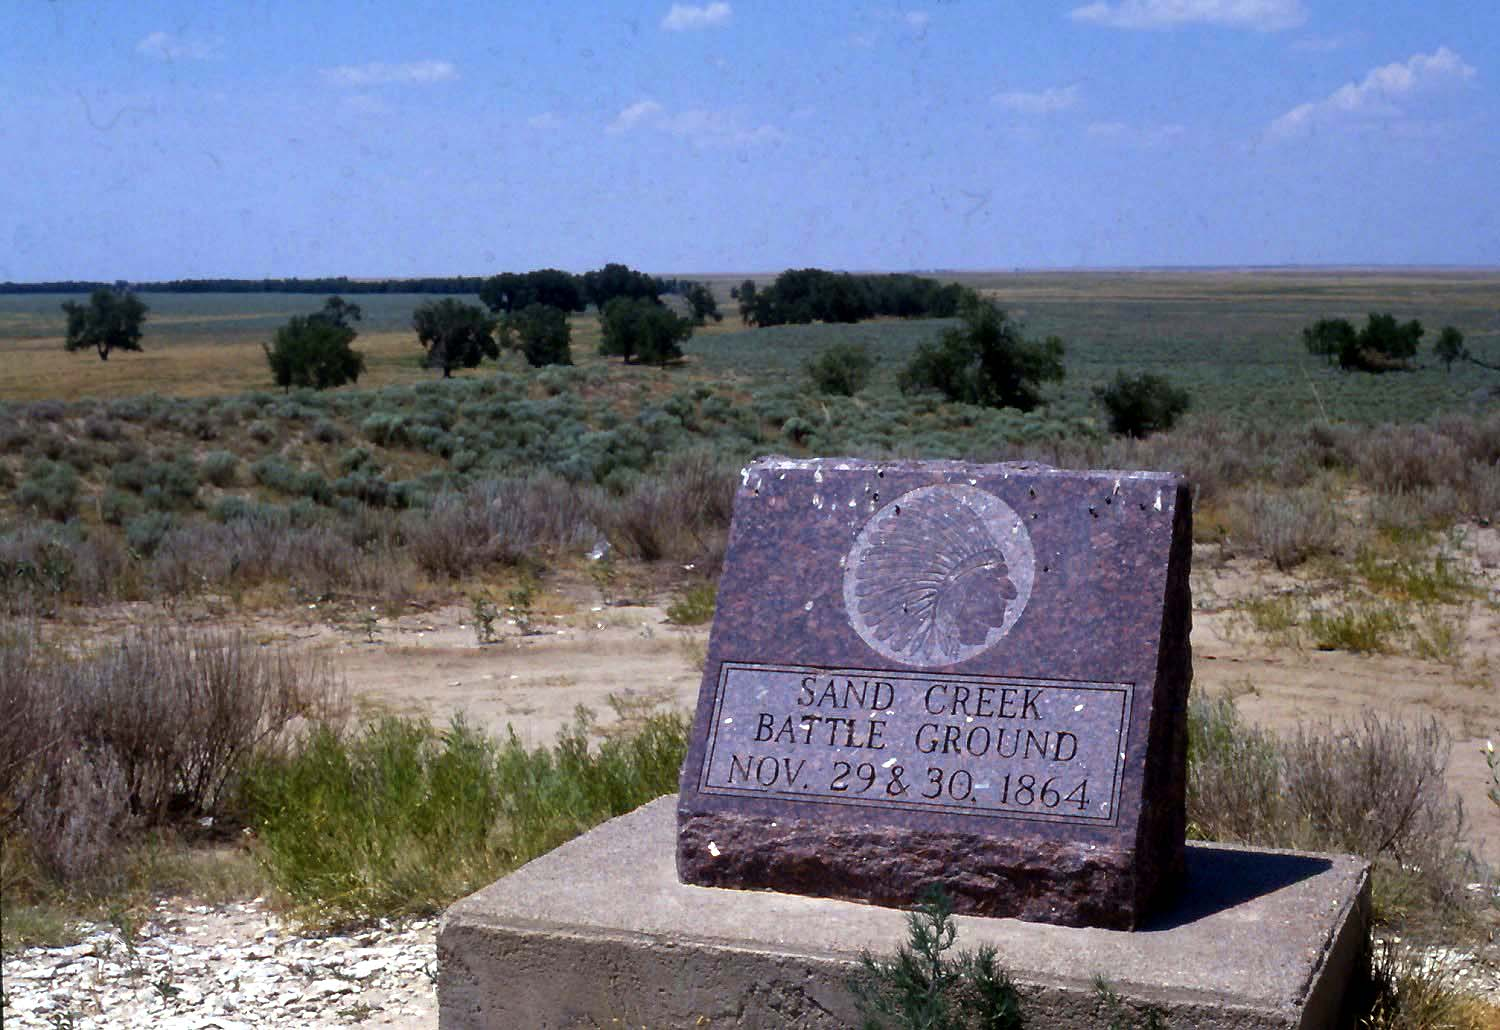 Patty Limerick: A memorial to the Sand Creek massacre of 1864